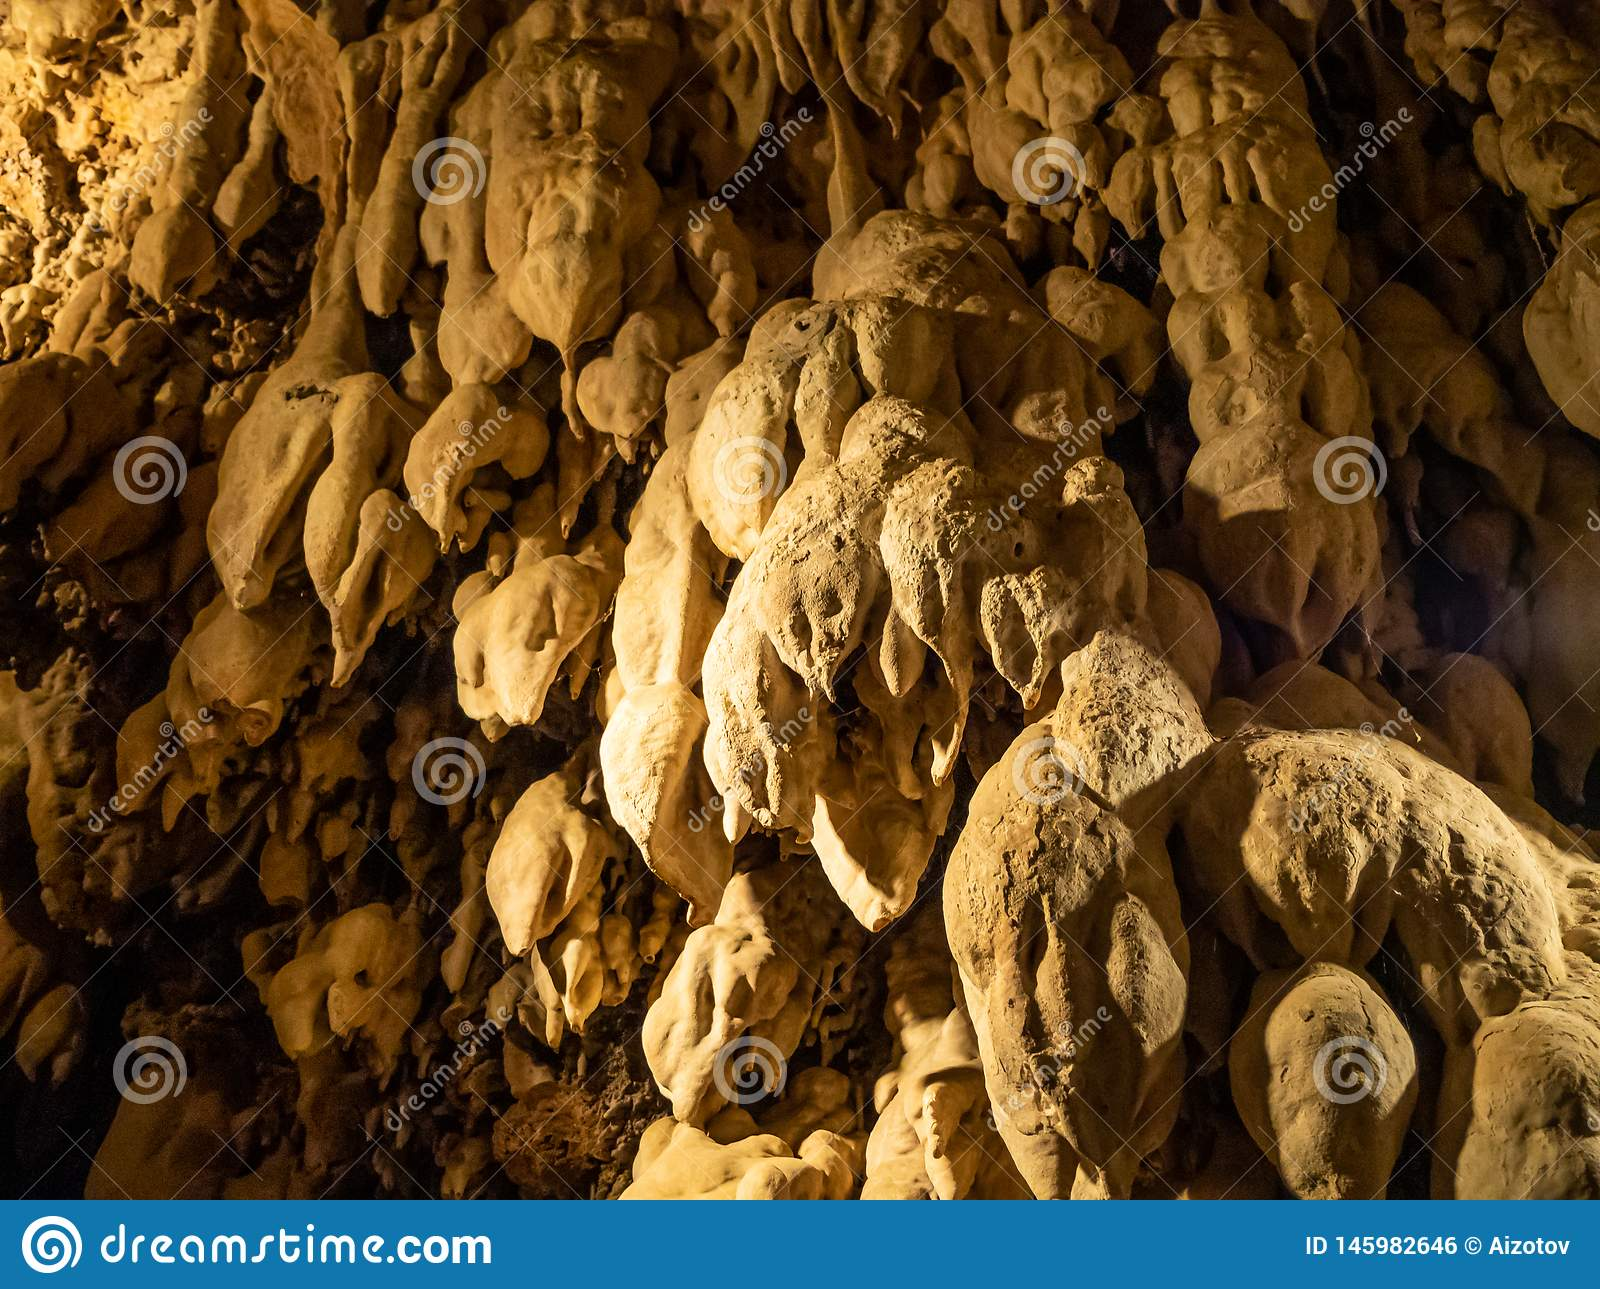 Mineral growths stalactites and stalagmites in a cave in the waterfalls park in the city of Edessa, Greece